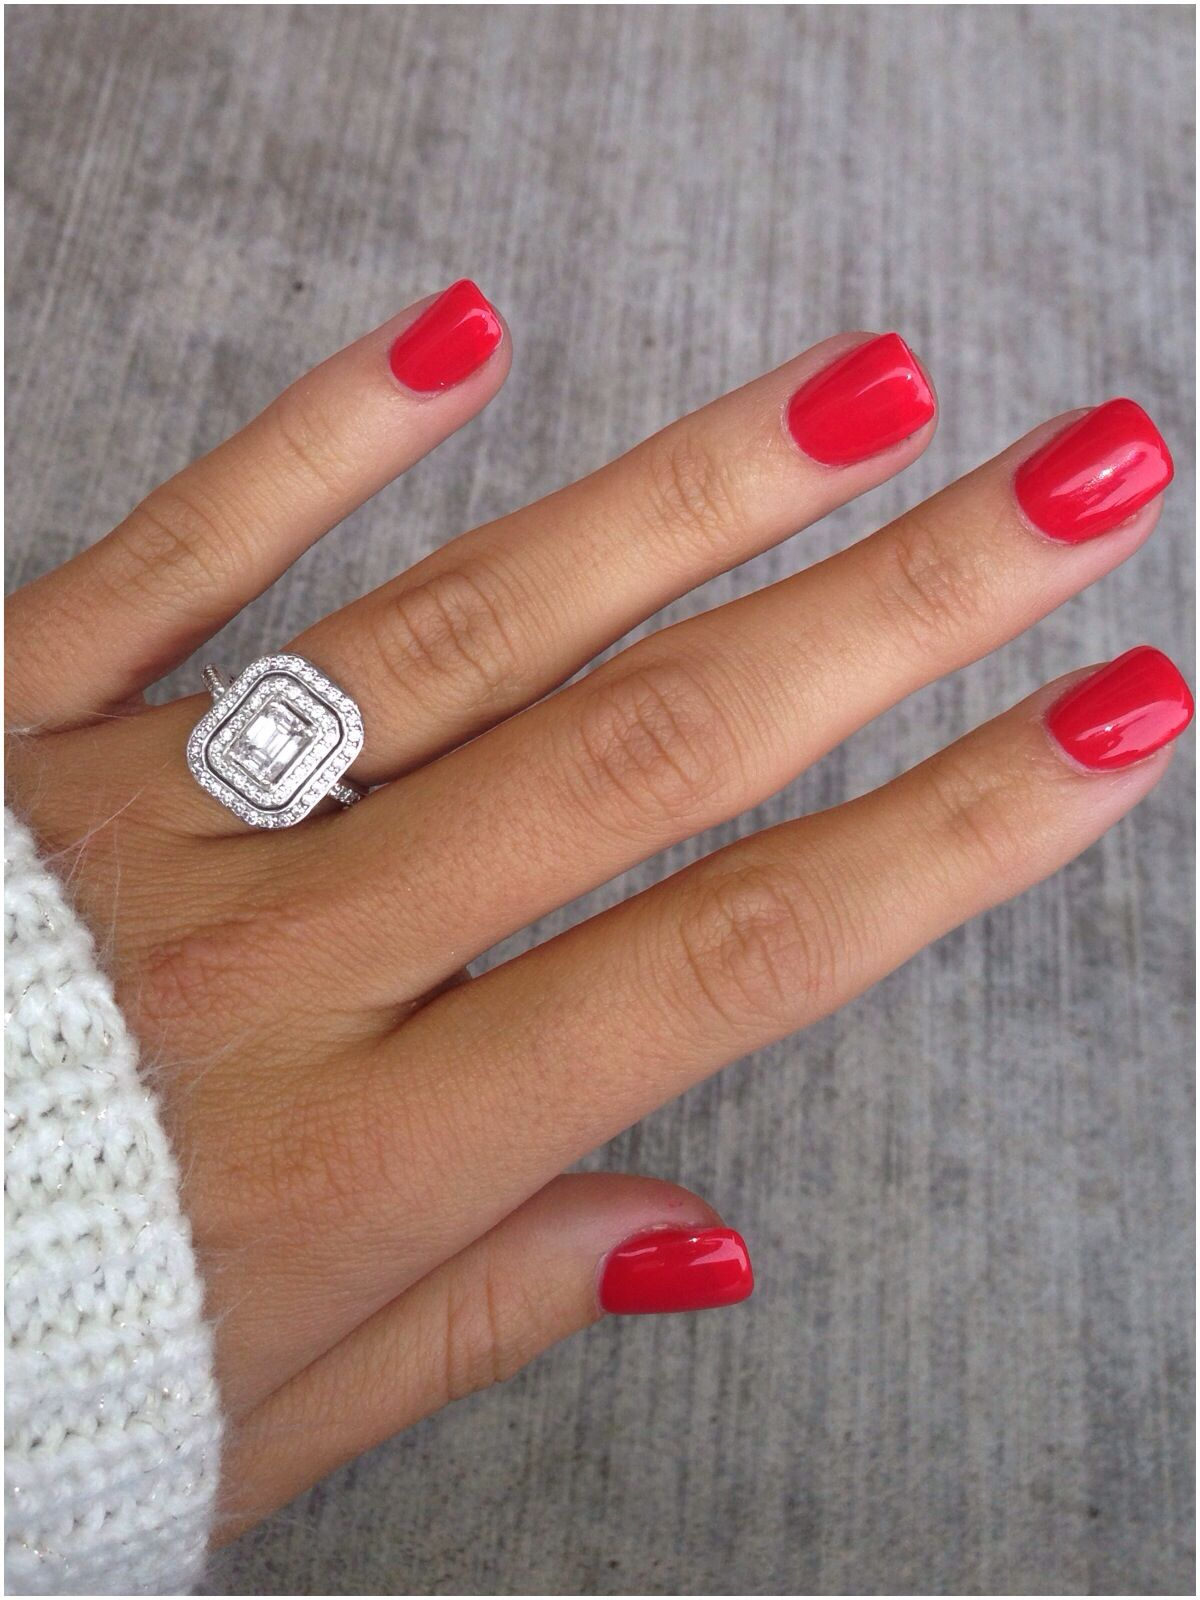 Pin By Barbarawilliams On Nice Nails Red Gel Nails Square Acrylic Nails Red Nails